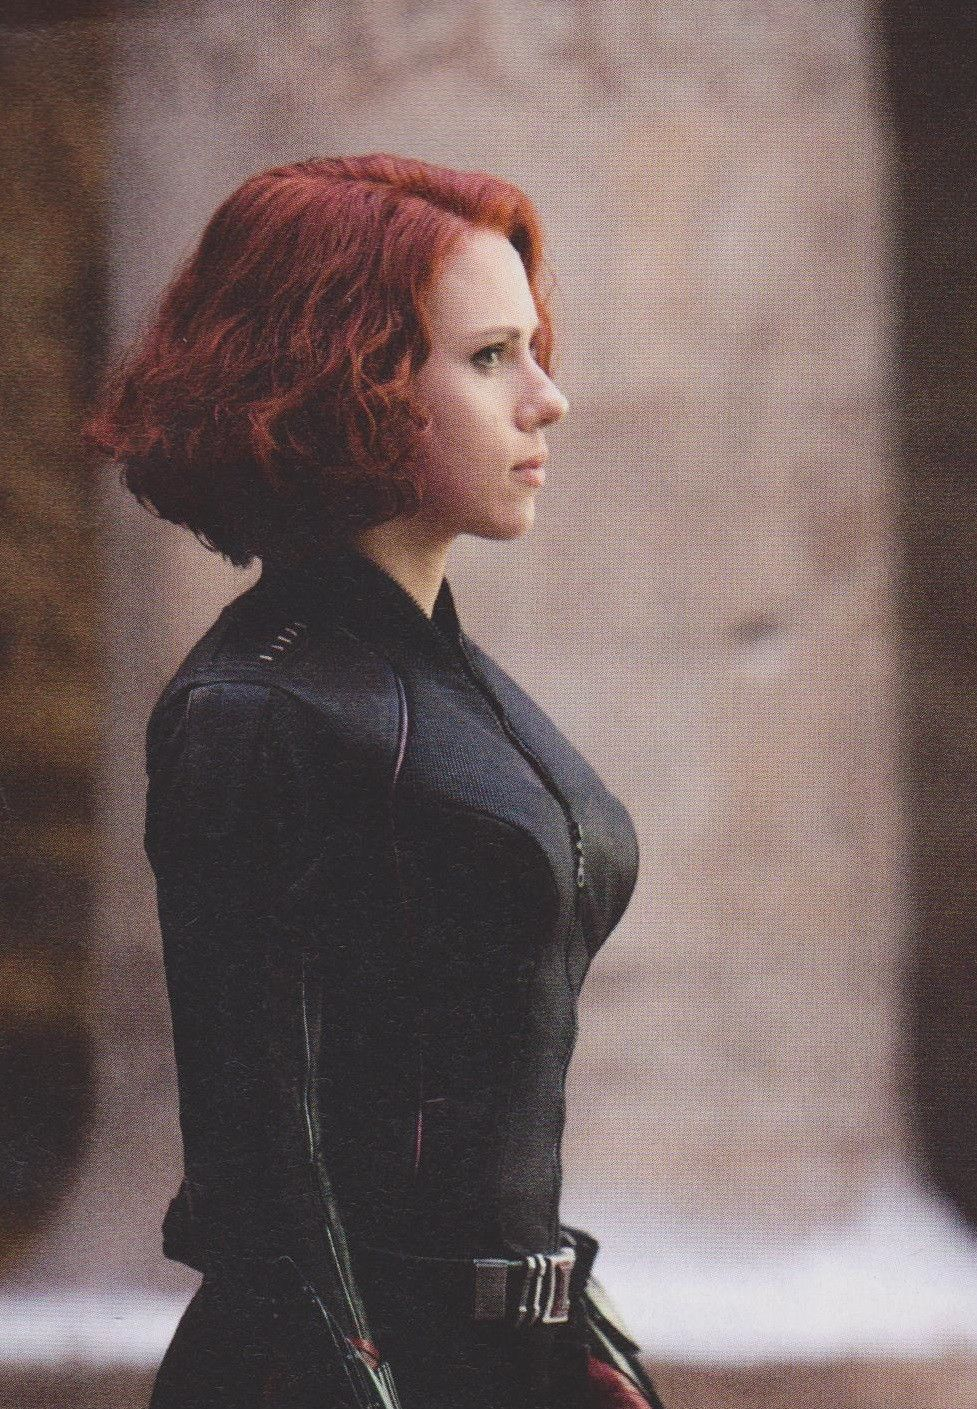 Captain America Scarlet Witch And More In New Avengers